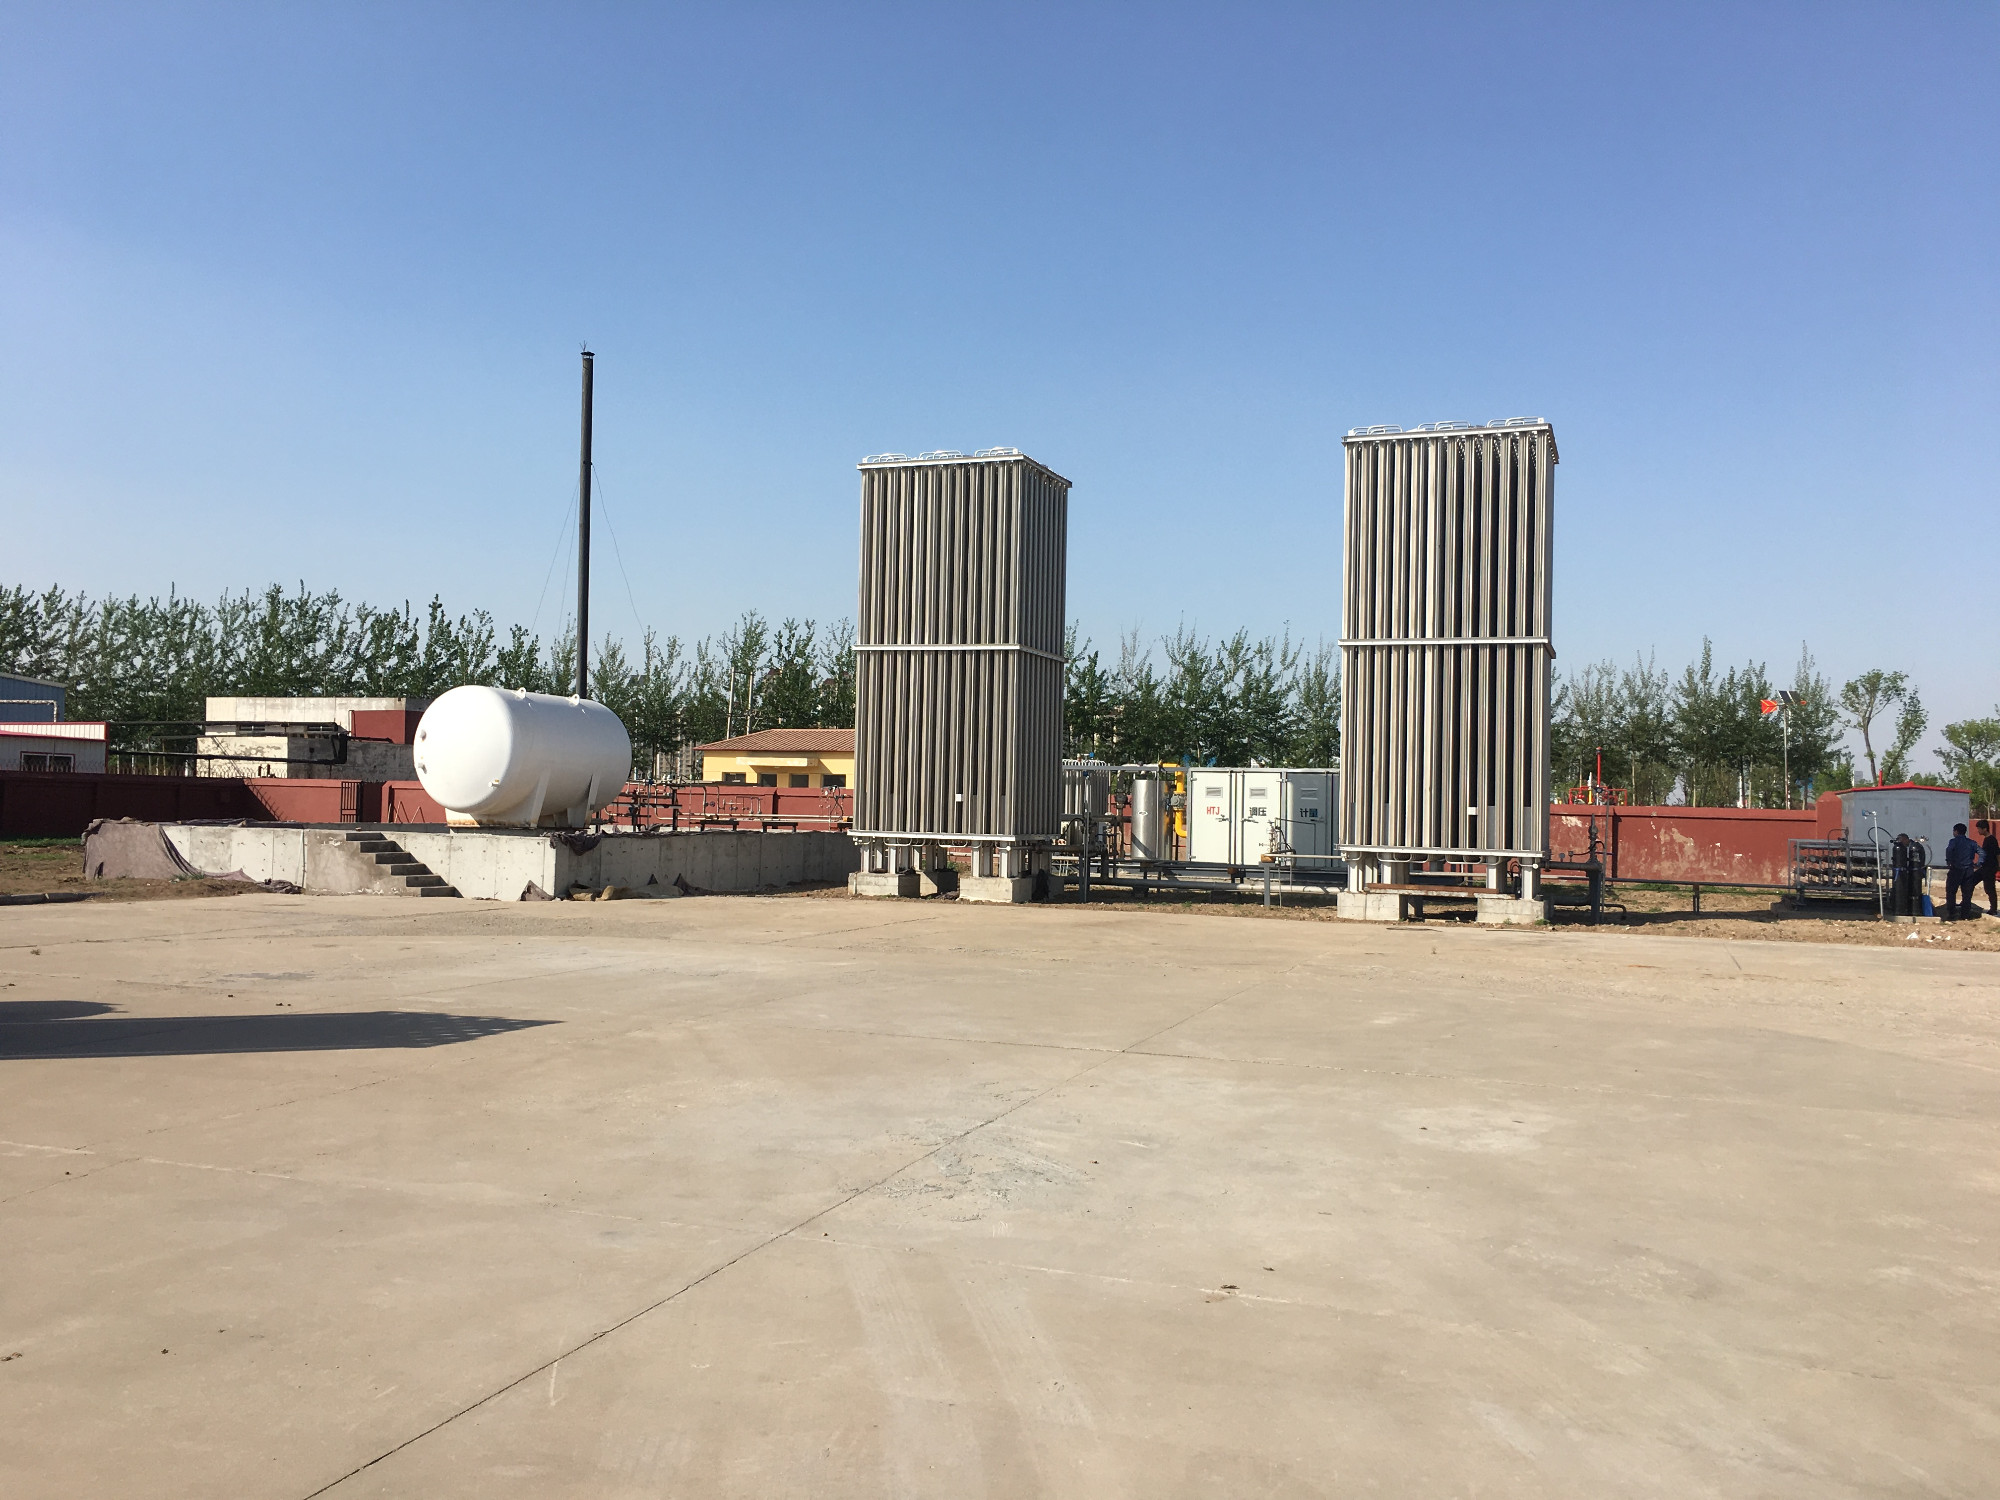 LNG Evaporator Skid With Capacity 7000NM3/H Manufacturers, LNG Evaporator Skid With Capacity 7000NM3/H Factory, Supply LNG Evaporator Skid With Capacity 7000NM3/H